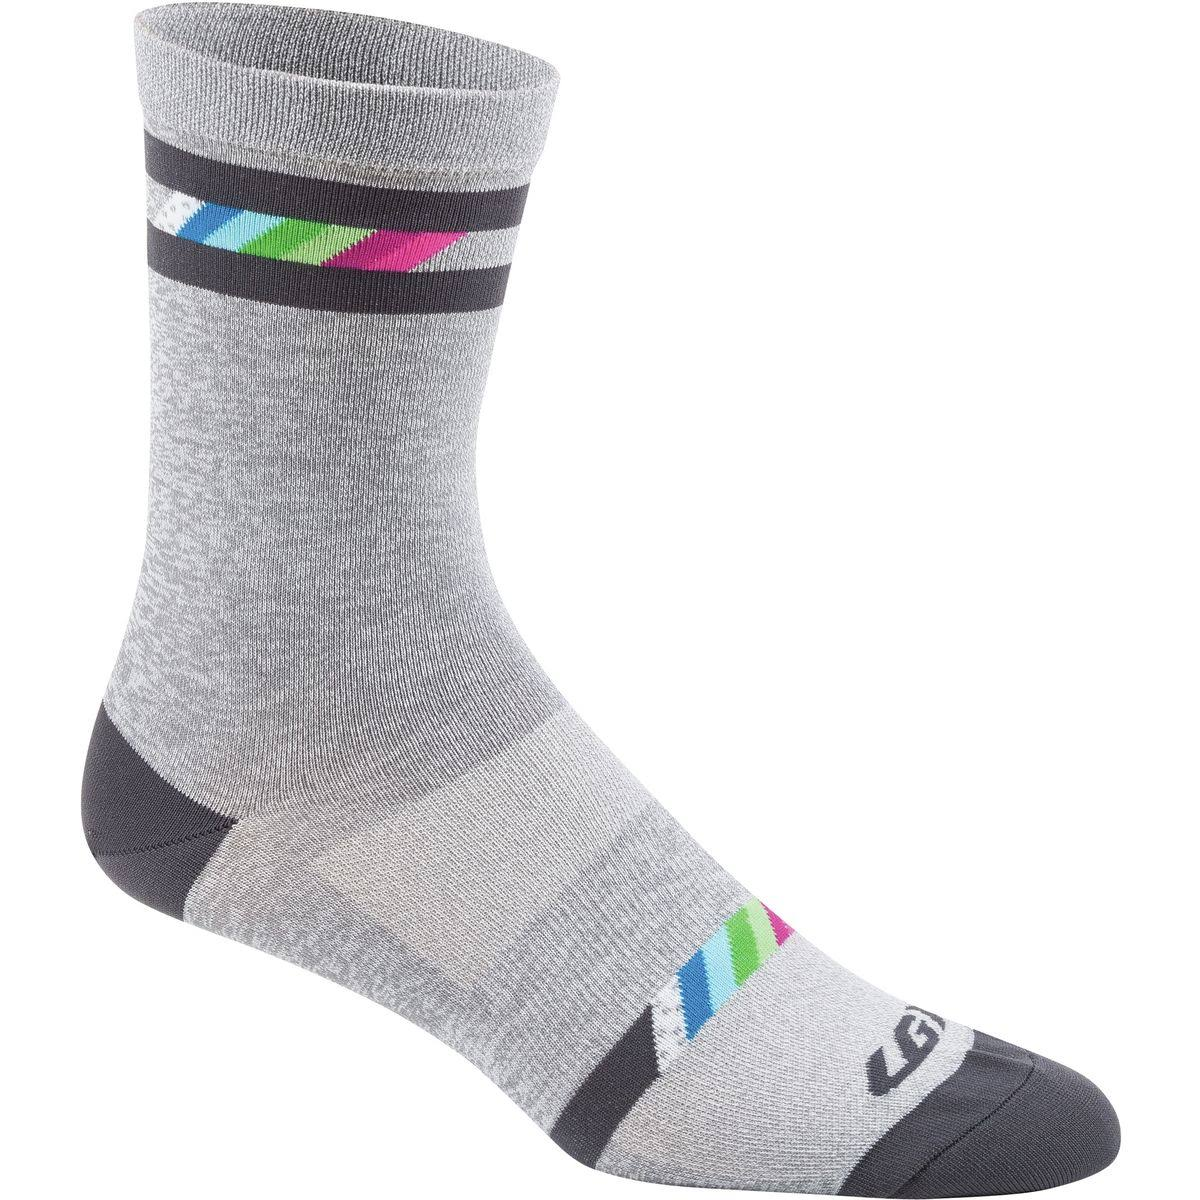 Louis Garneau Tuscan Long Cycling Socks